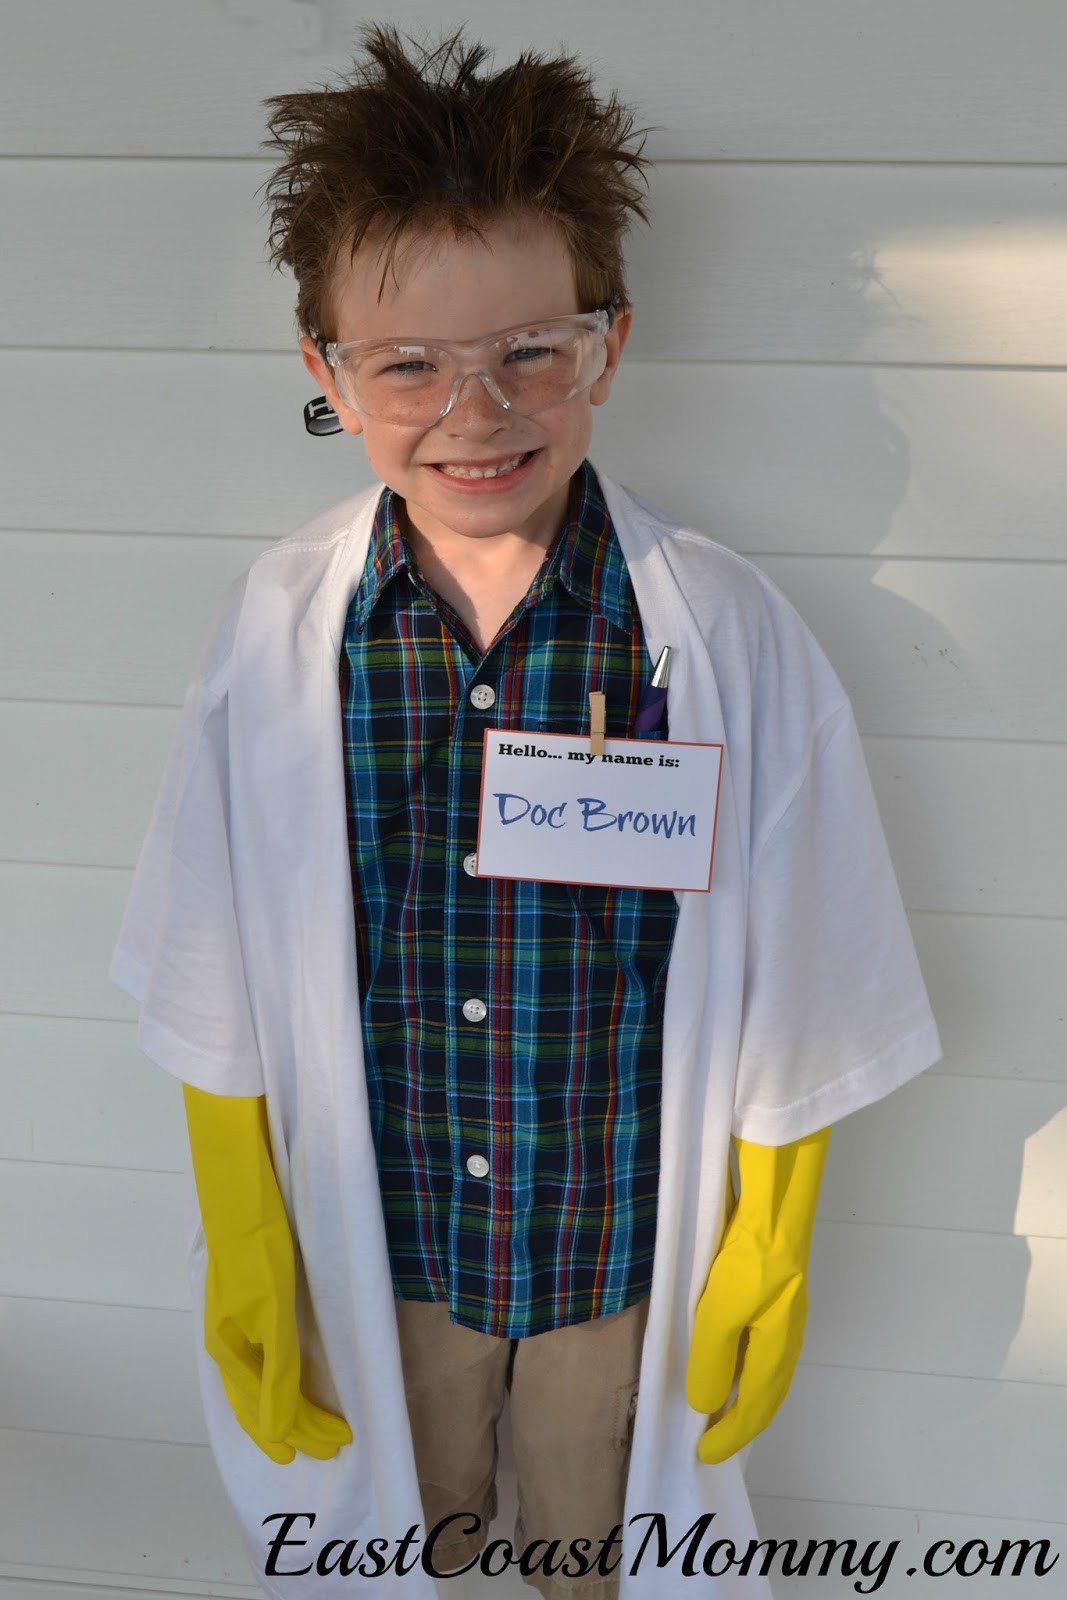 Best ideas about DIY Mad Scientist Costume . Save or Pin East Coast Mommy 20 Awesome No Sew Costumes for Kids Now.